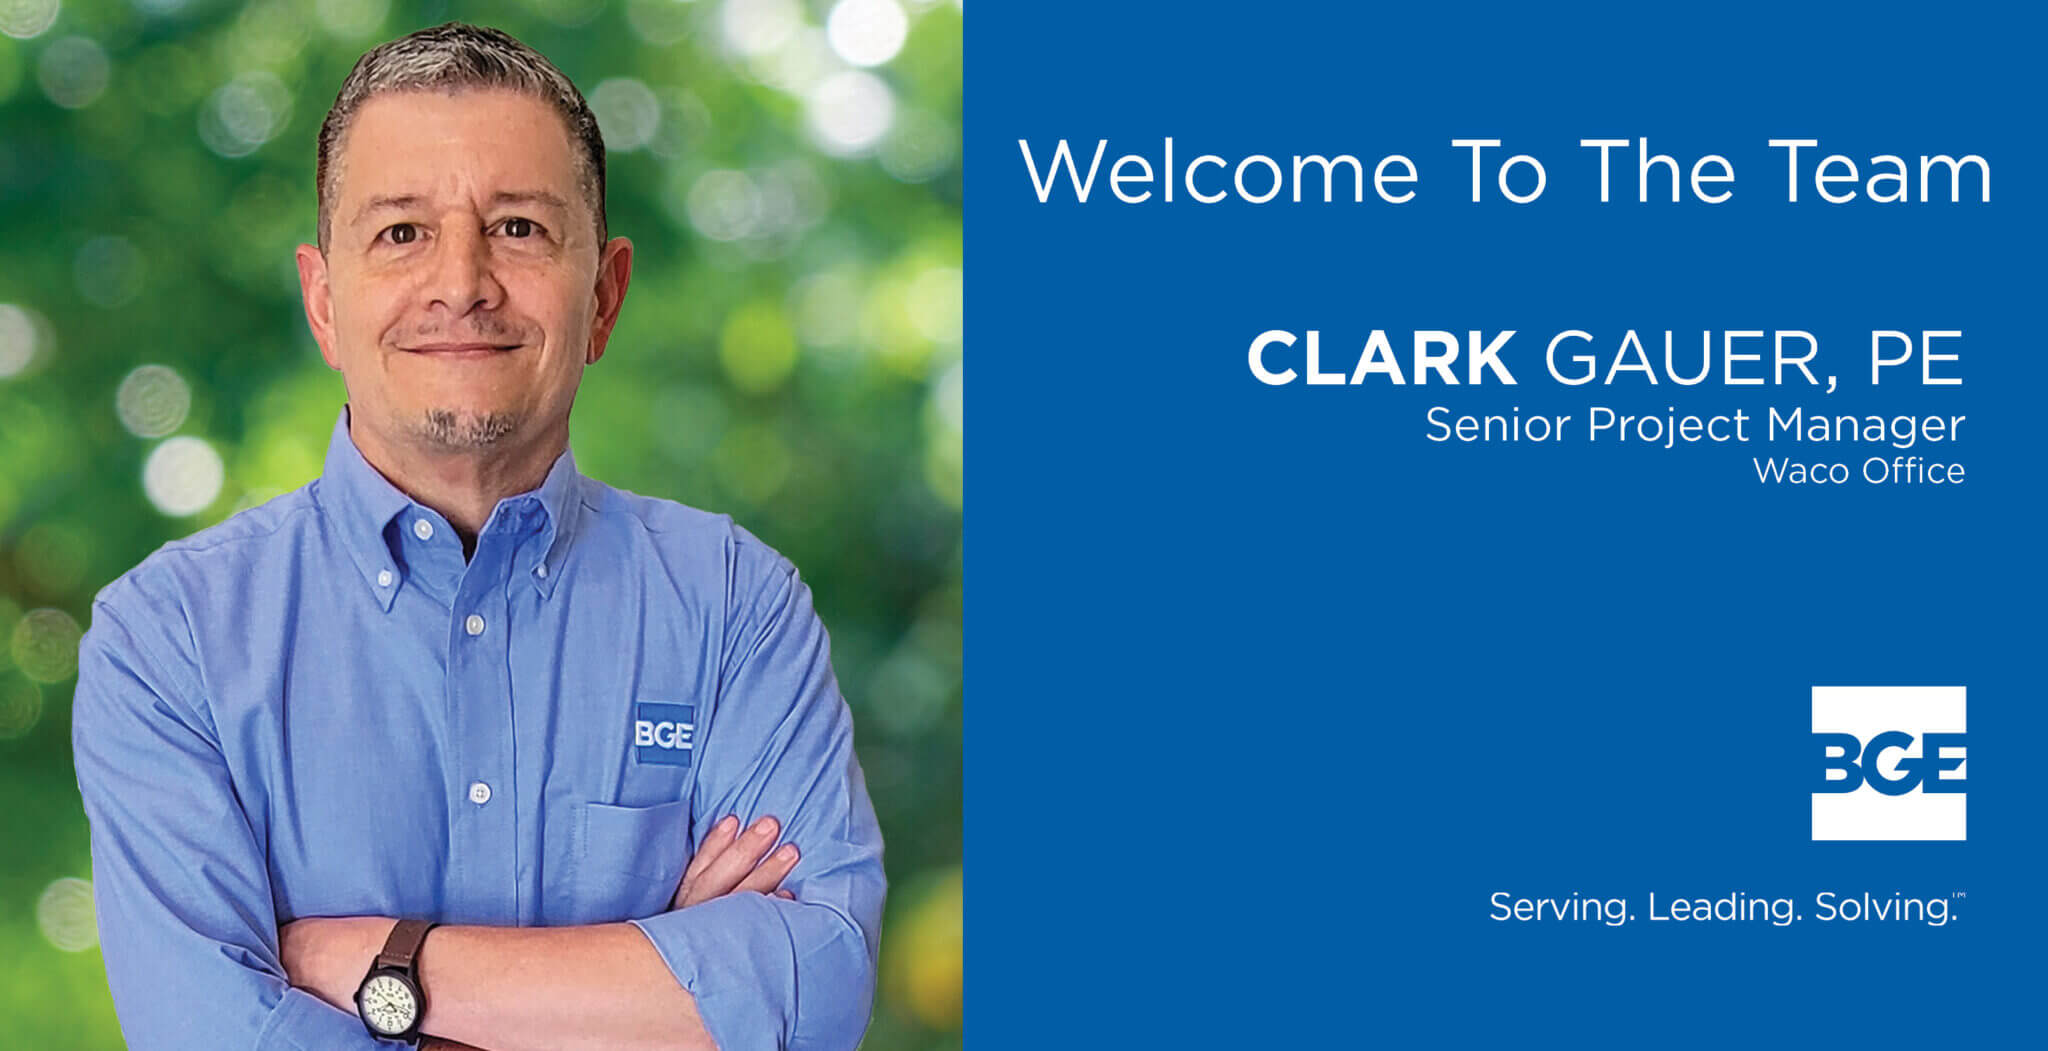 BGE Welcomes Clark Gauer as Senior Project Manager